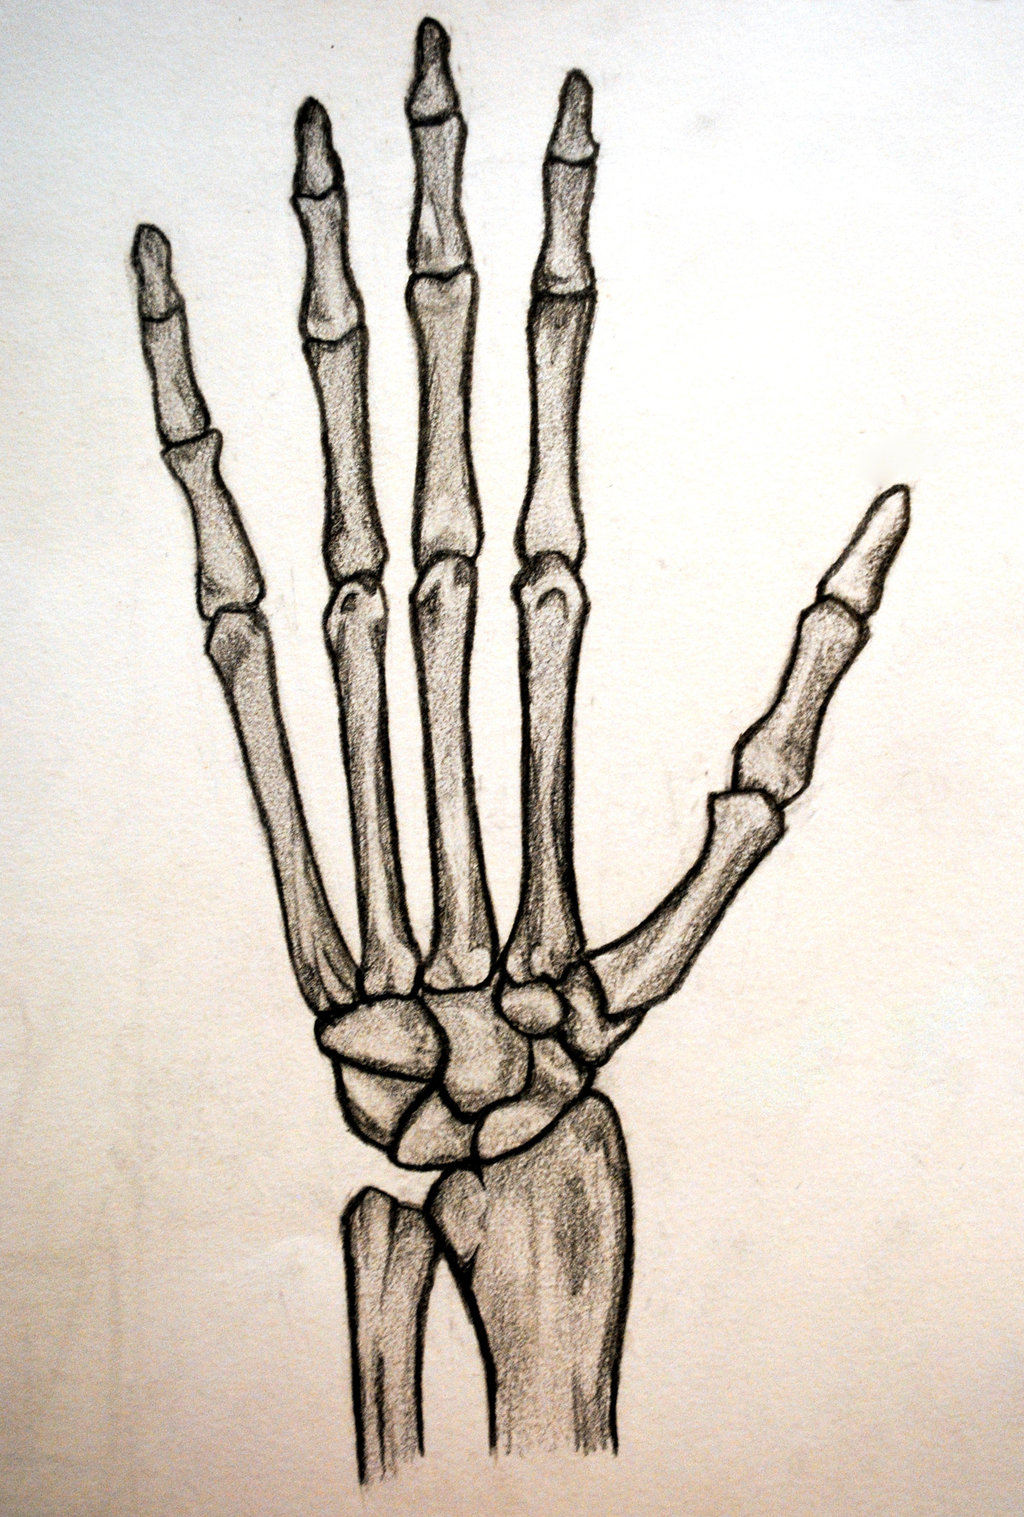 Skeleton Hand Drawing - ClipArt Best